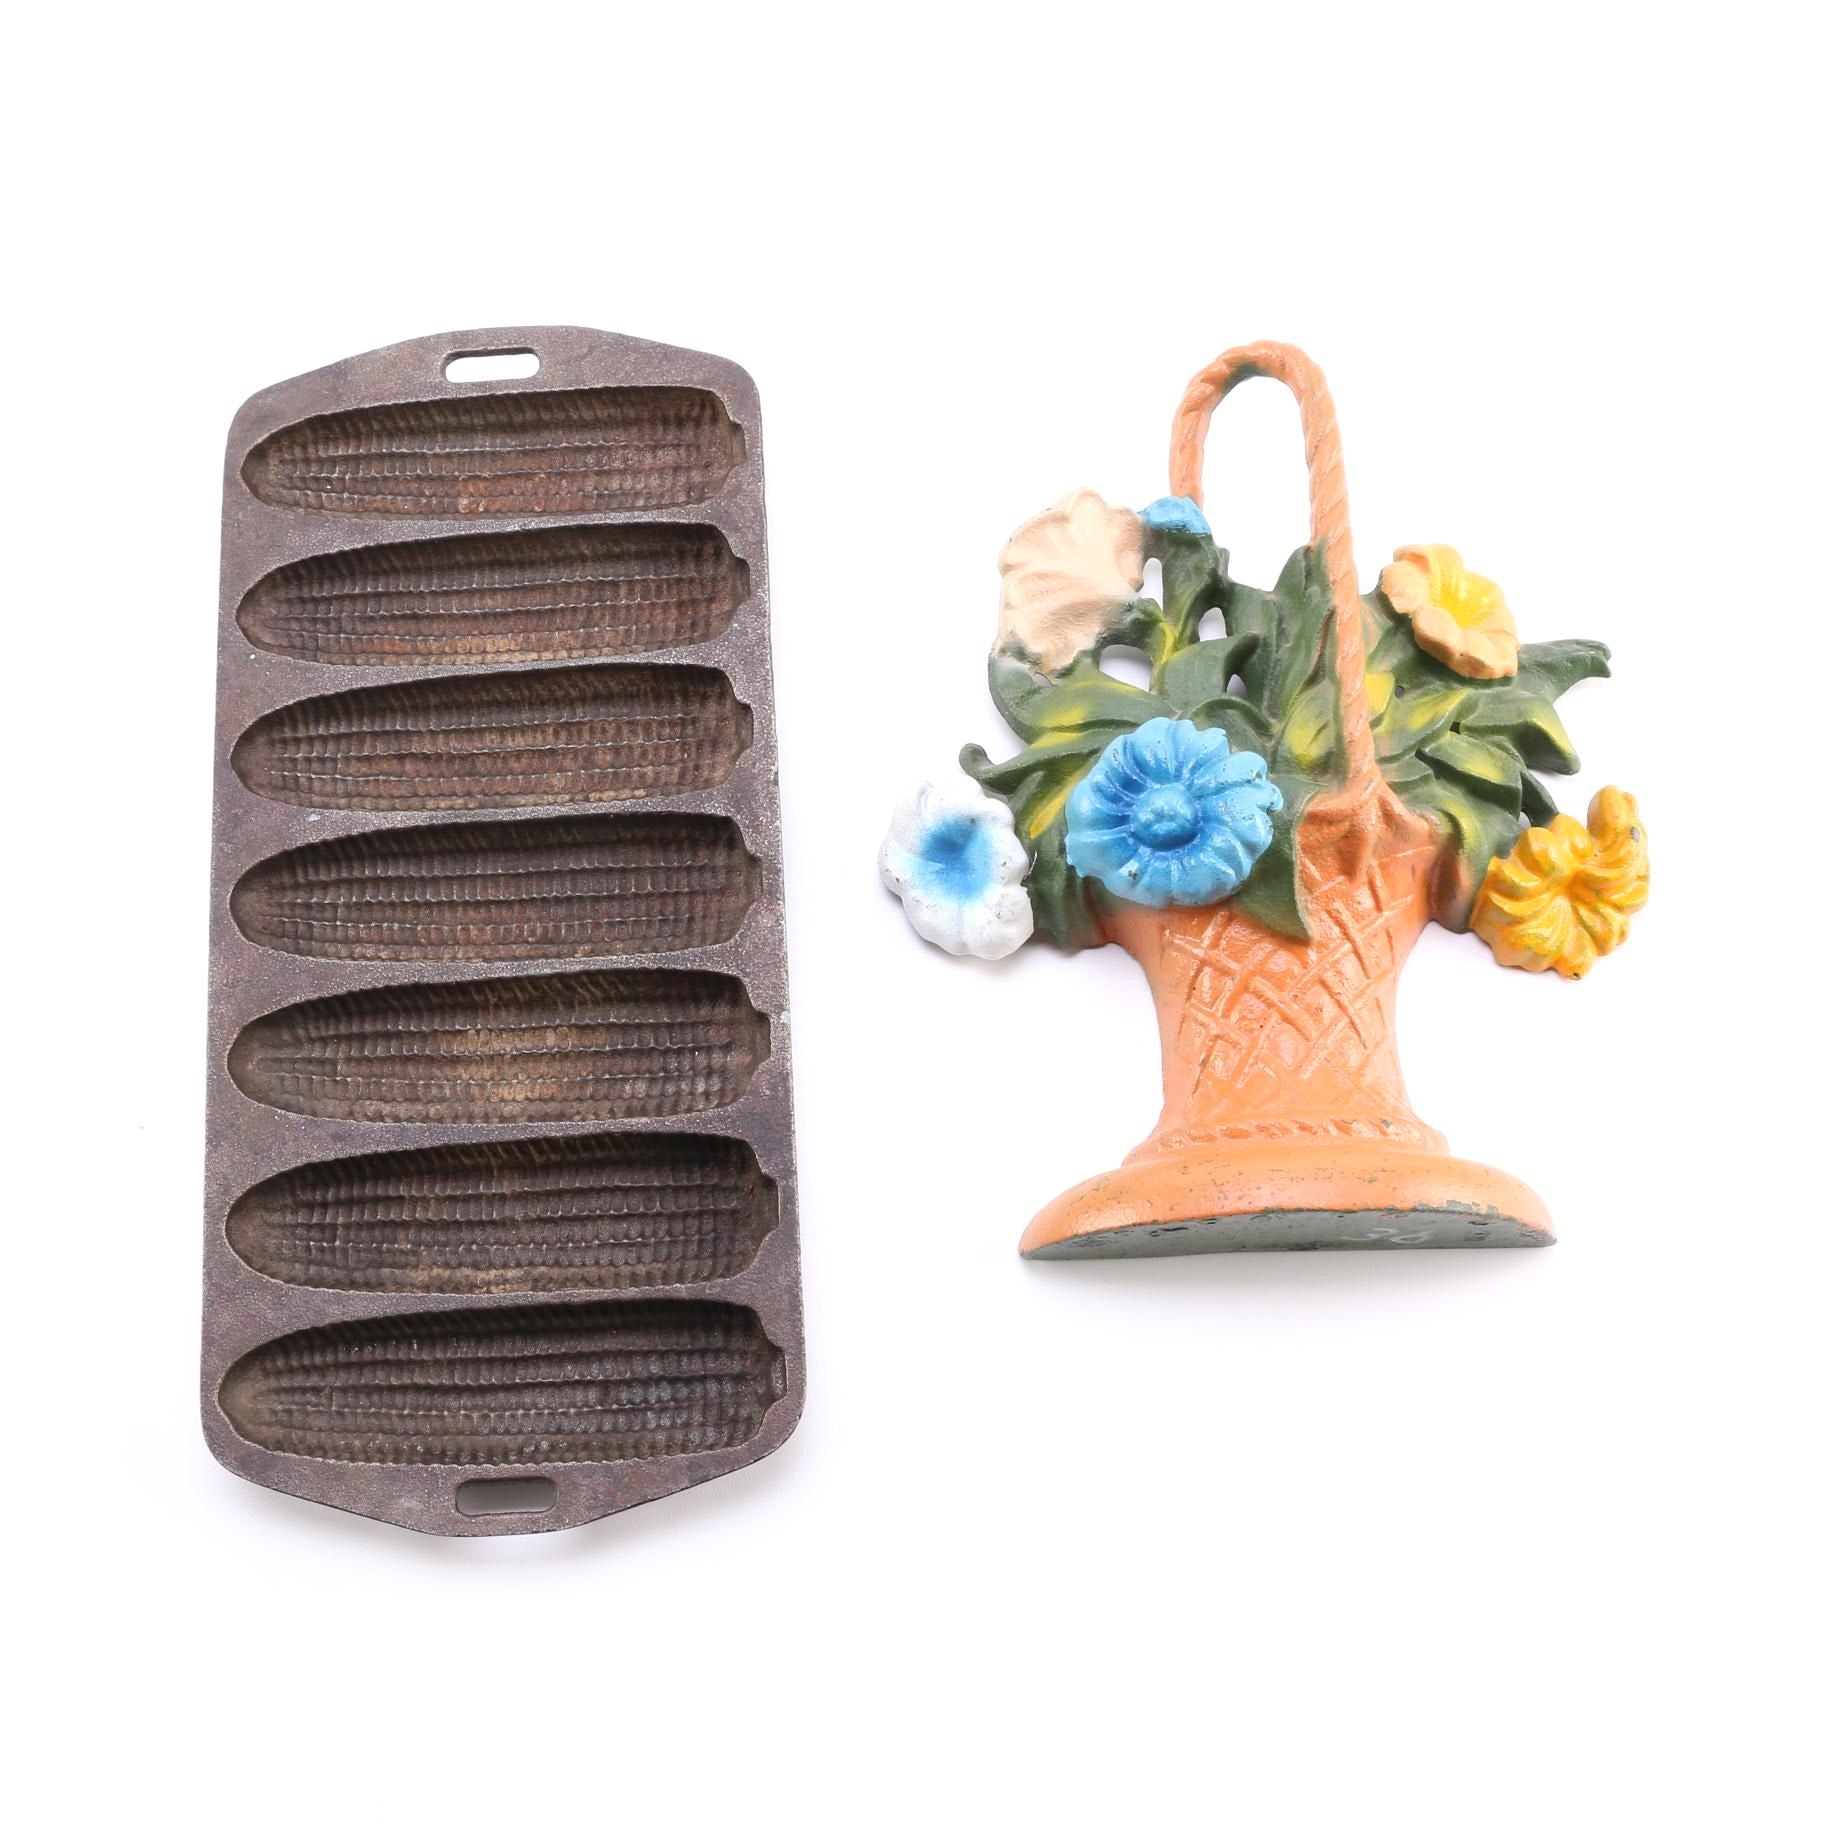 Vintage Cast Iron Corn Bread Pan and Painted Doorstop